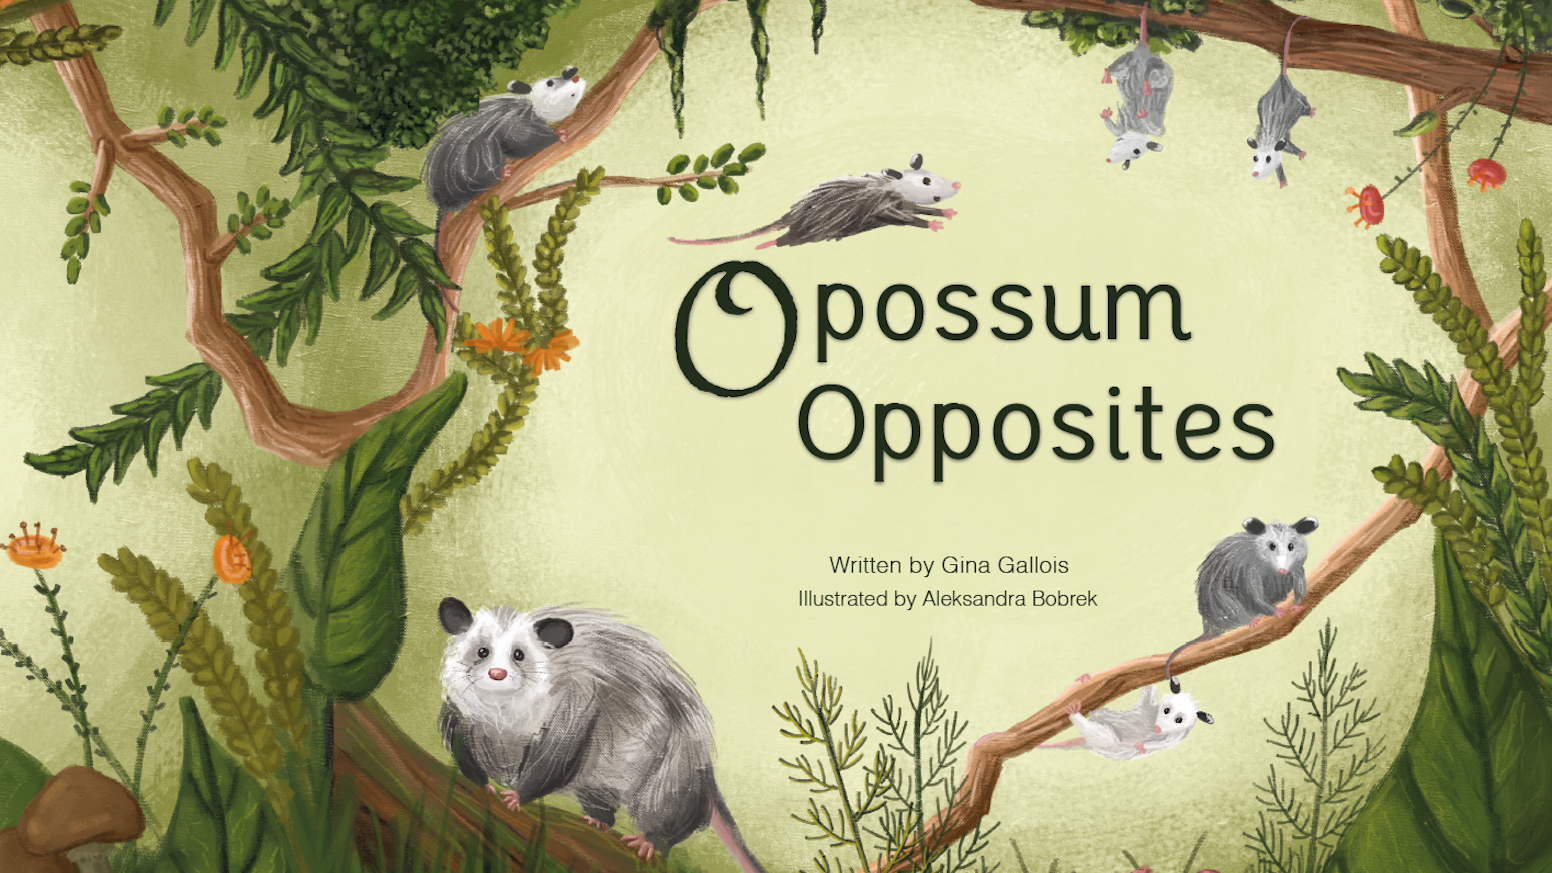 A rhyming children's book to introduce opposites while teaching empathy through the lens of a unique & misunderstood animal